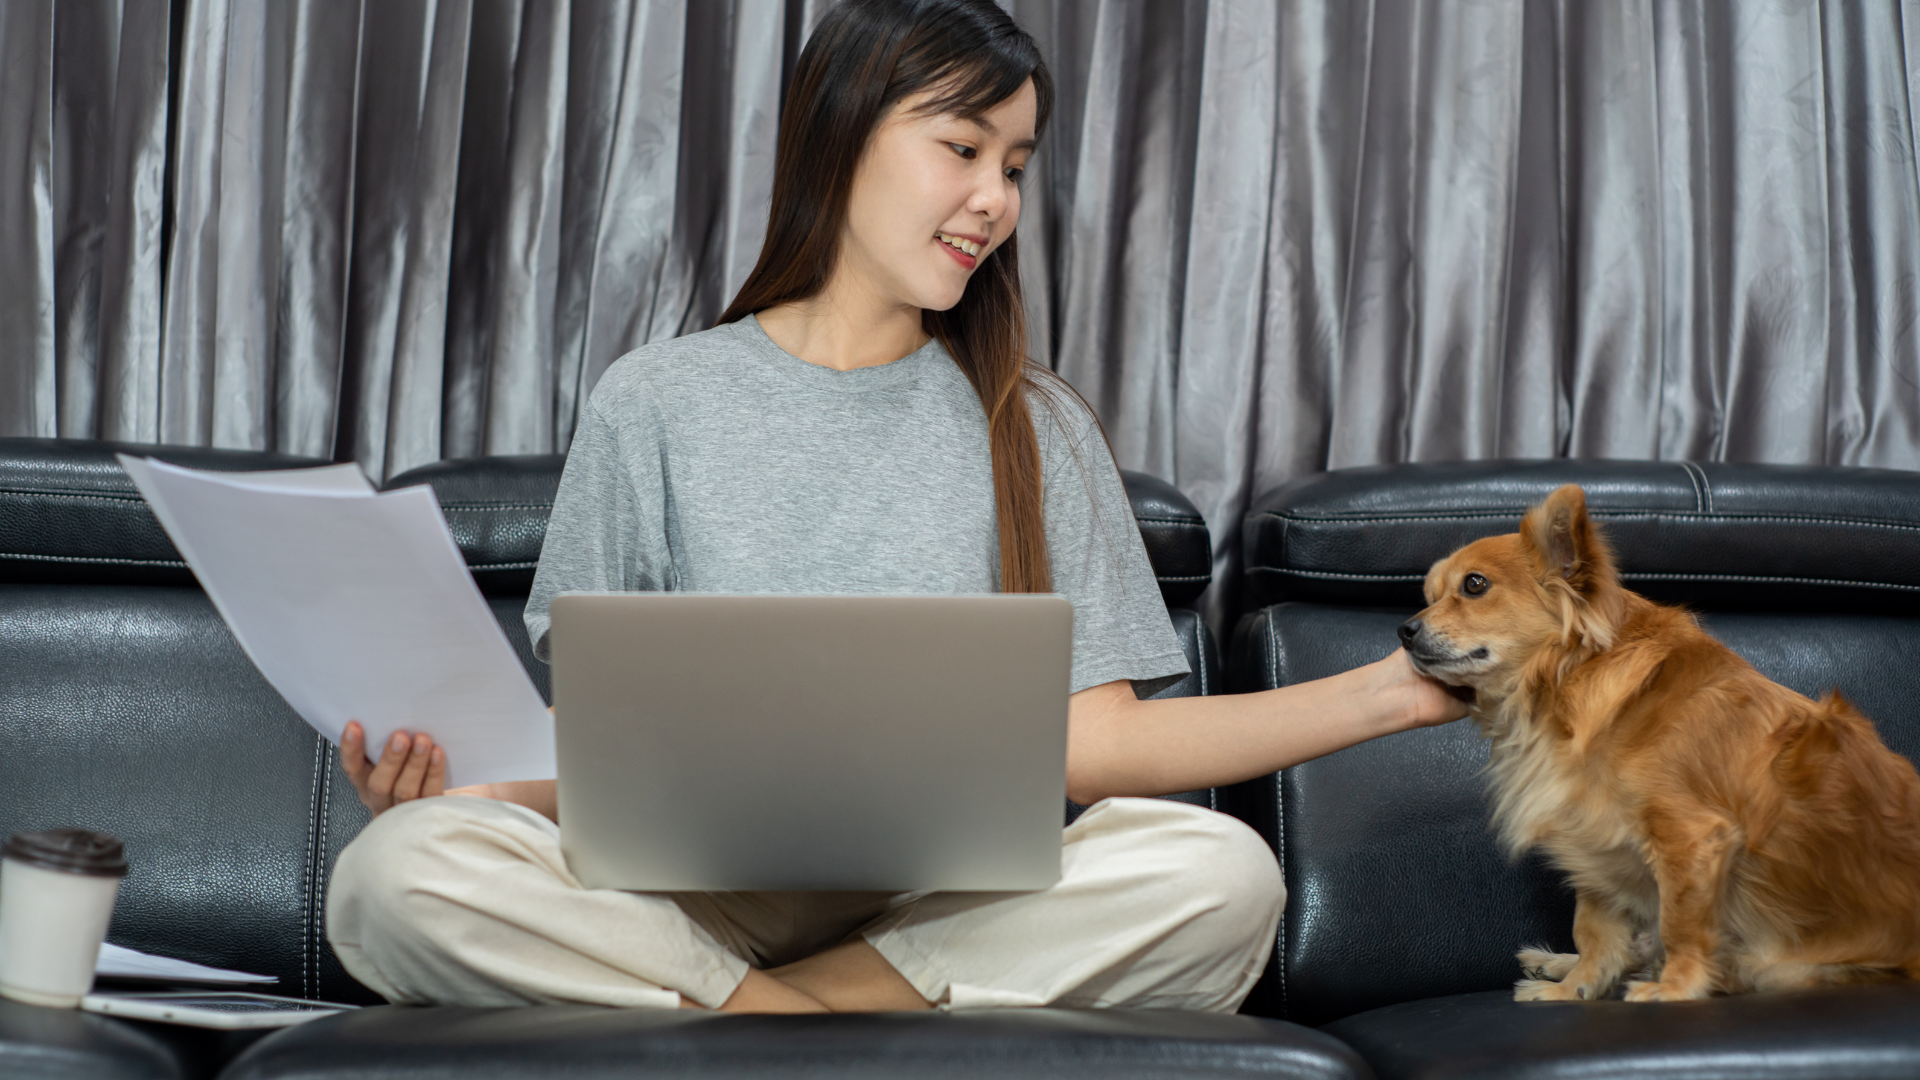 8-3-21 The Pros and Cons of Office vs Remote Working